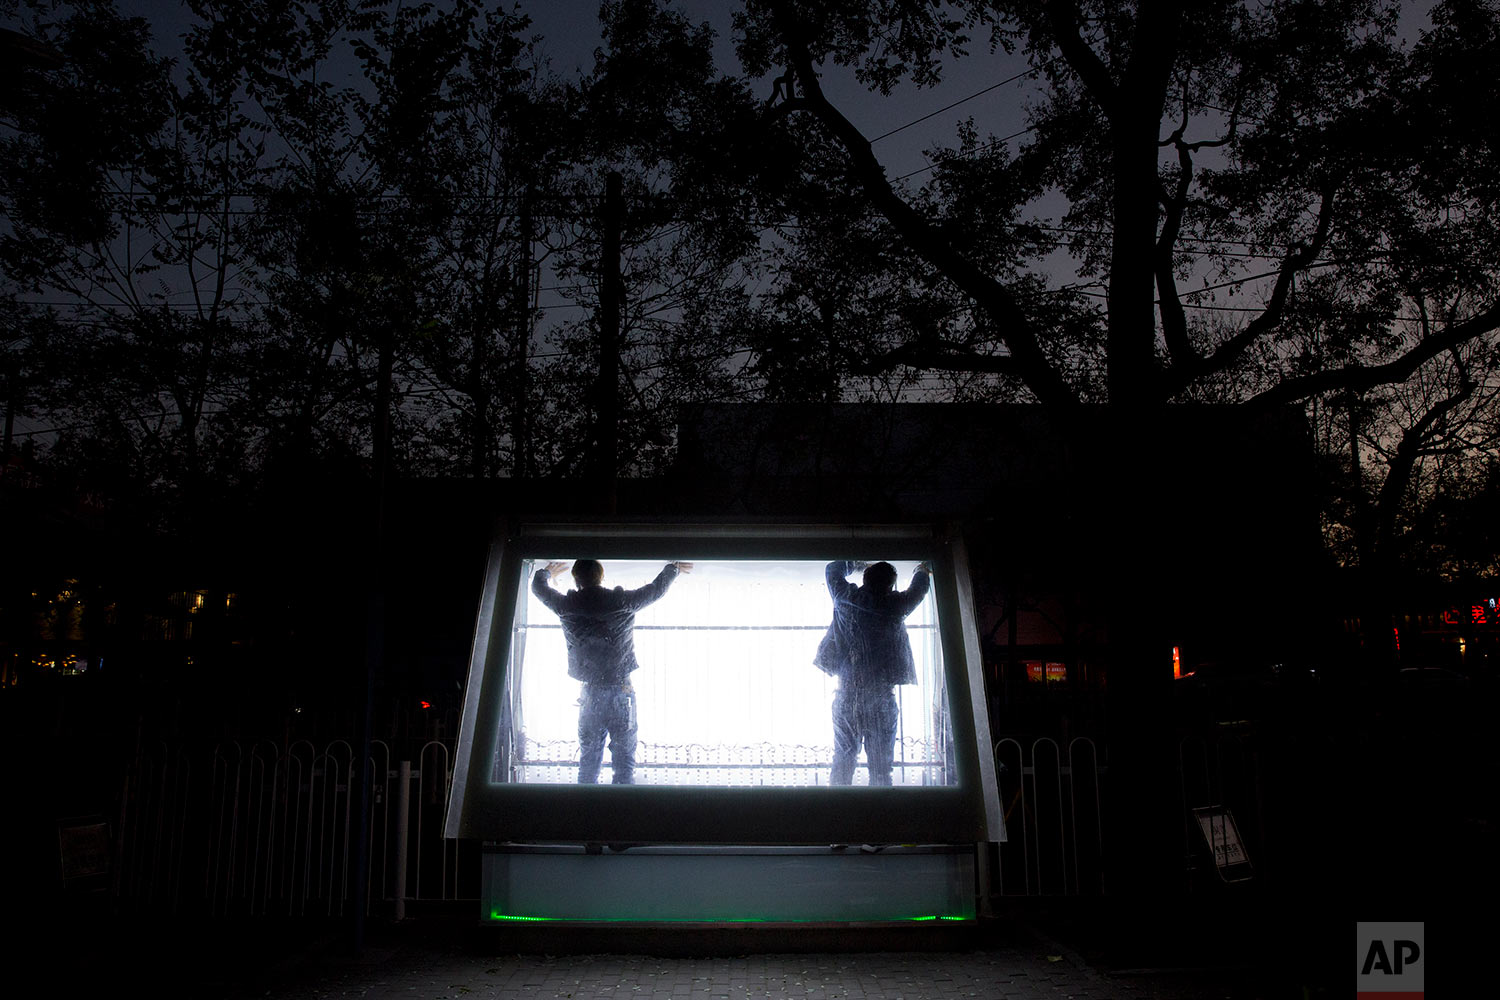 Workers prepare to install advertisements in a display case on the streets of Beijing, China, Wednesday, Nov. 22, 2017. Digital advertisement continues to grow in China, one of the world's largest ad market, where consumers embrace mobile technology and increasingly spend more time online. (AP Photo/Ng Han Guan)